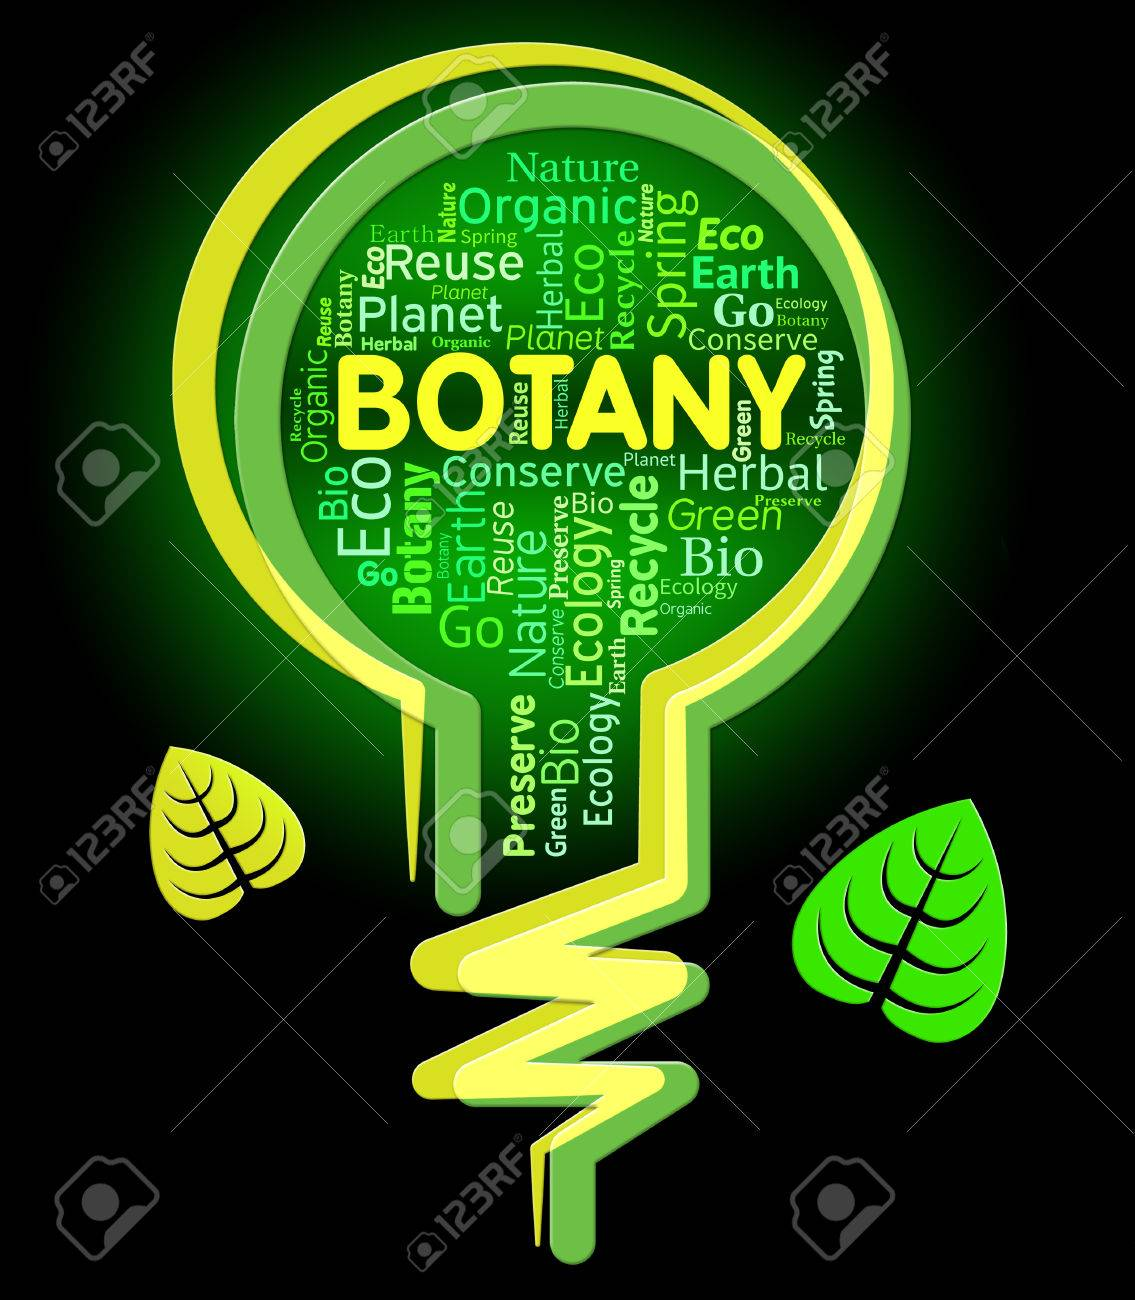 Botany Lightbulb Meaning Rural Eco And Natural Stock Photo Picture